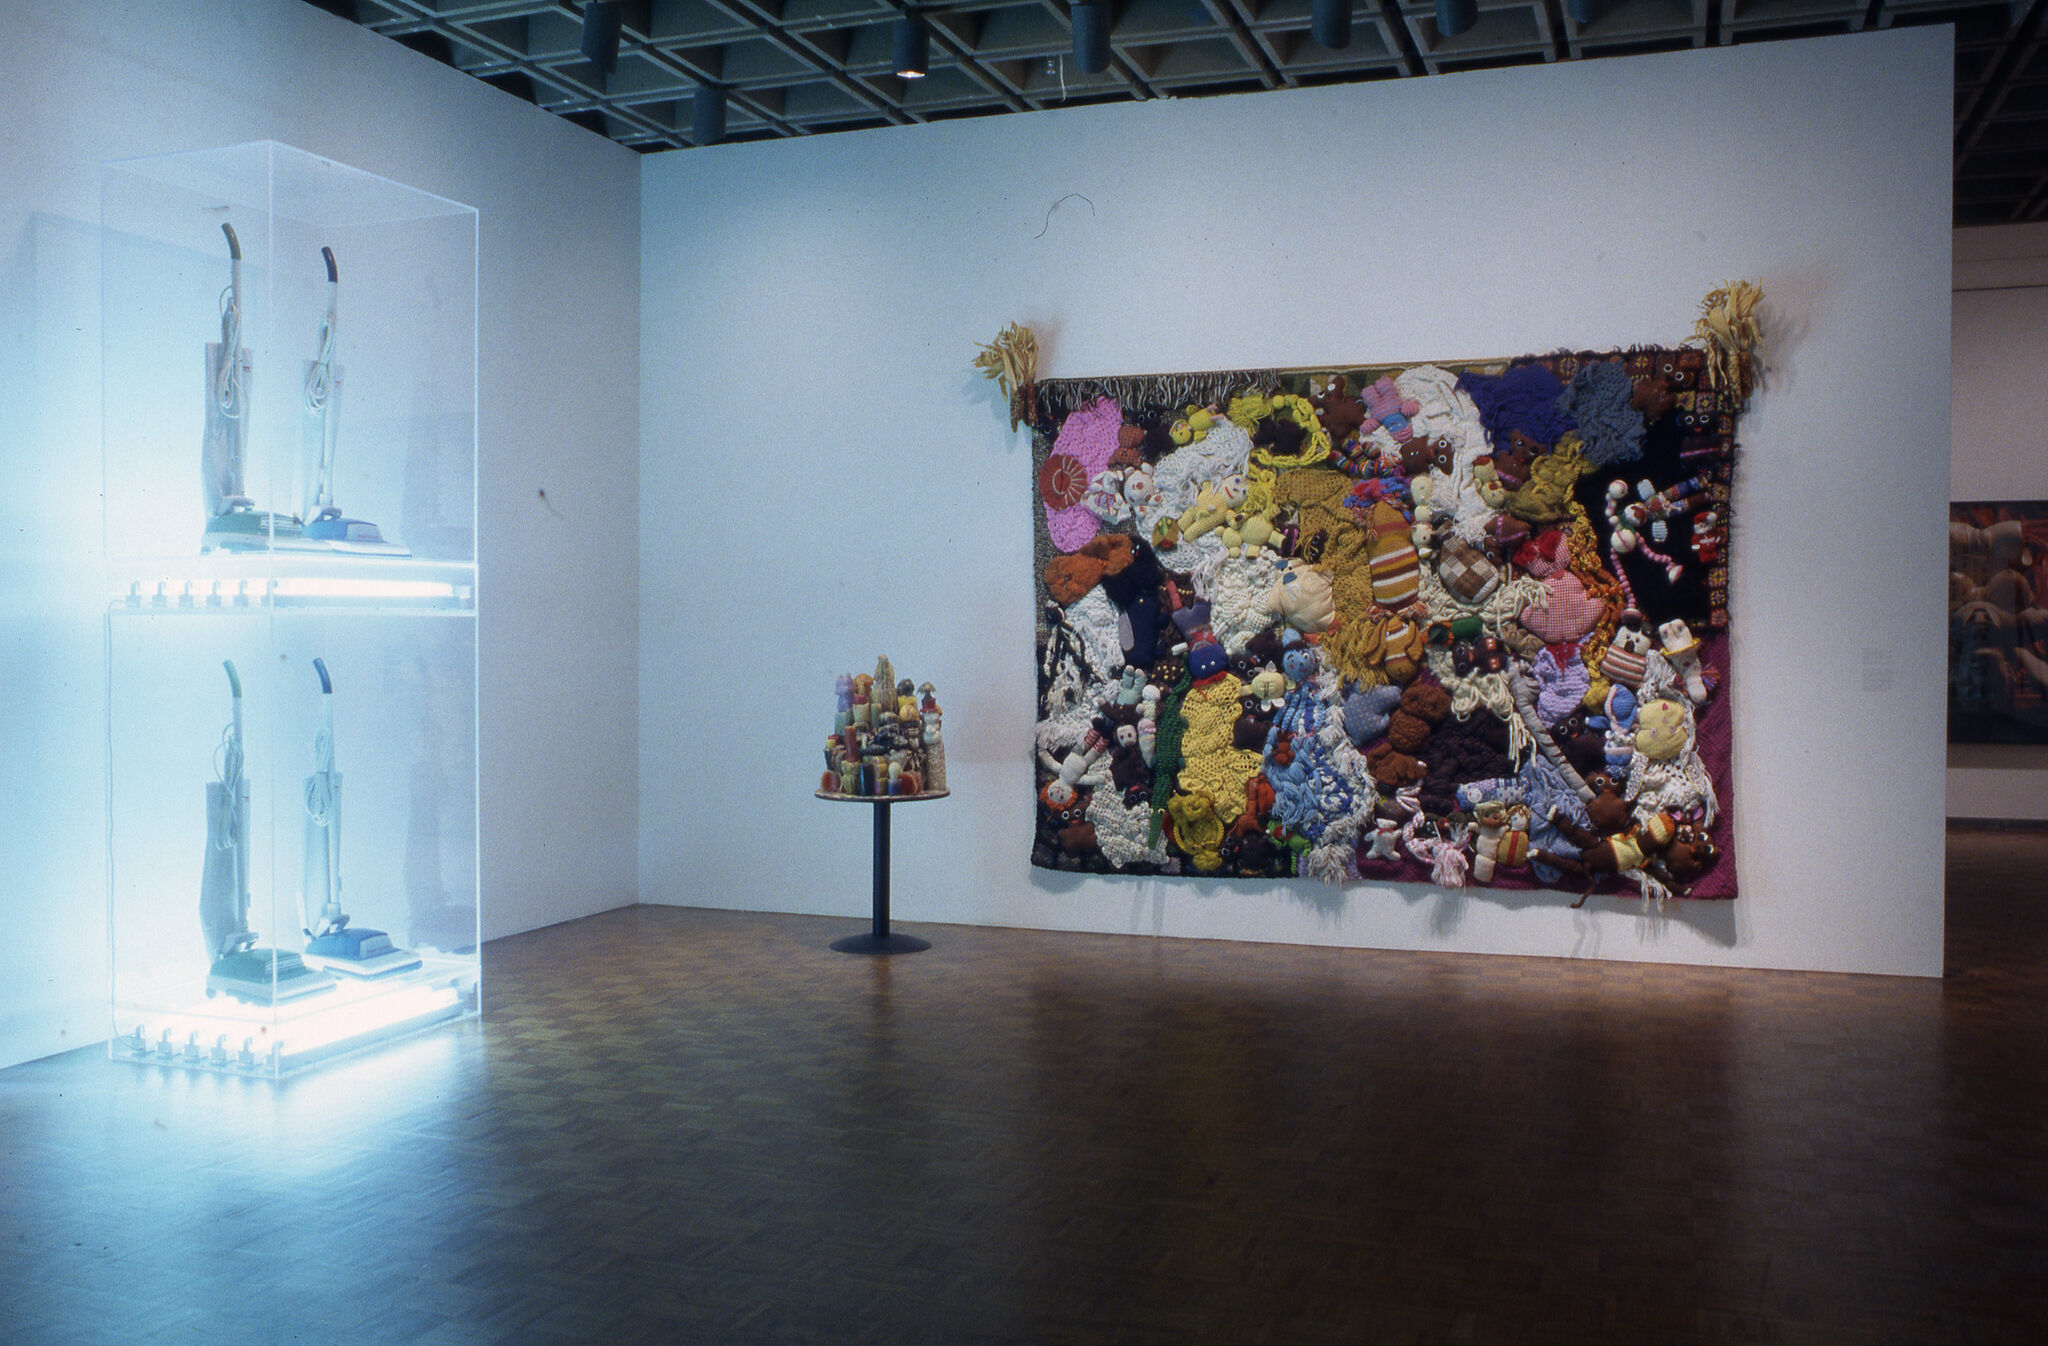 A large work of art made out of colorful textiles and knits, alongside a brightly lit sculpture displayed in a gallery.